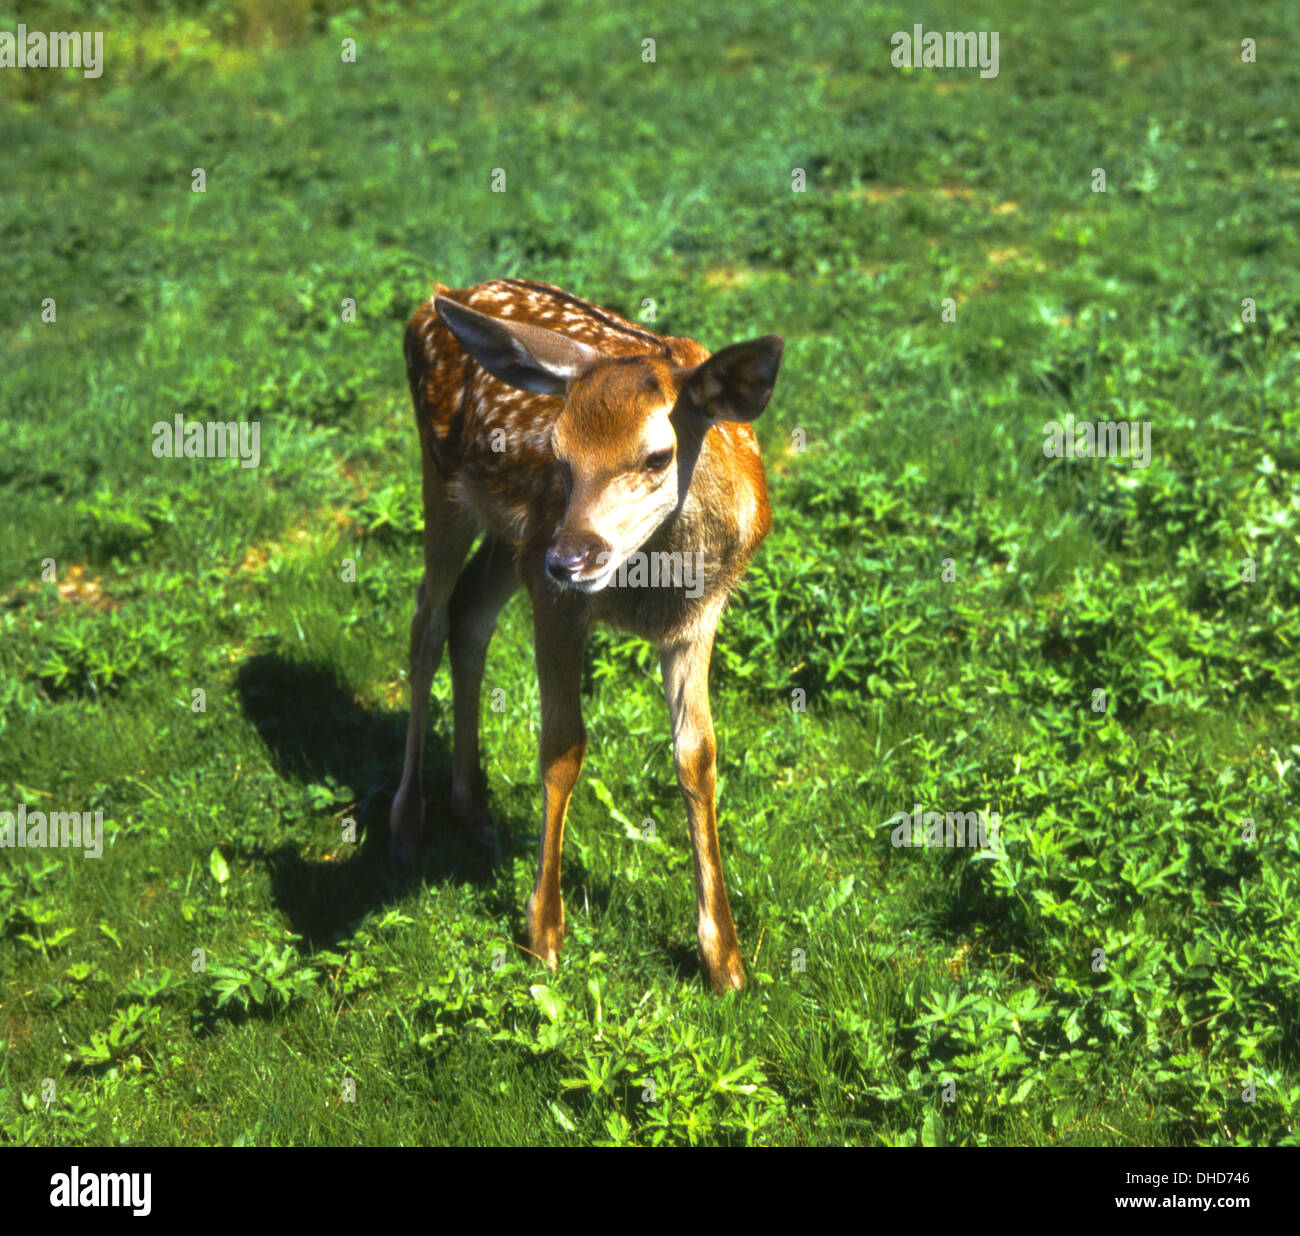 Red deer calf on a greenfield - Stock Image